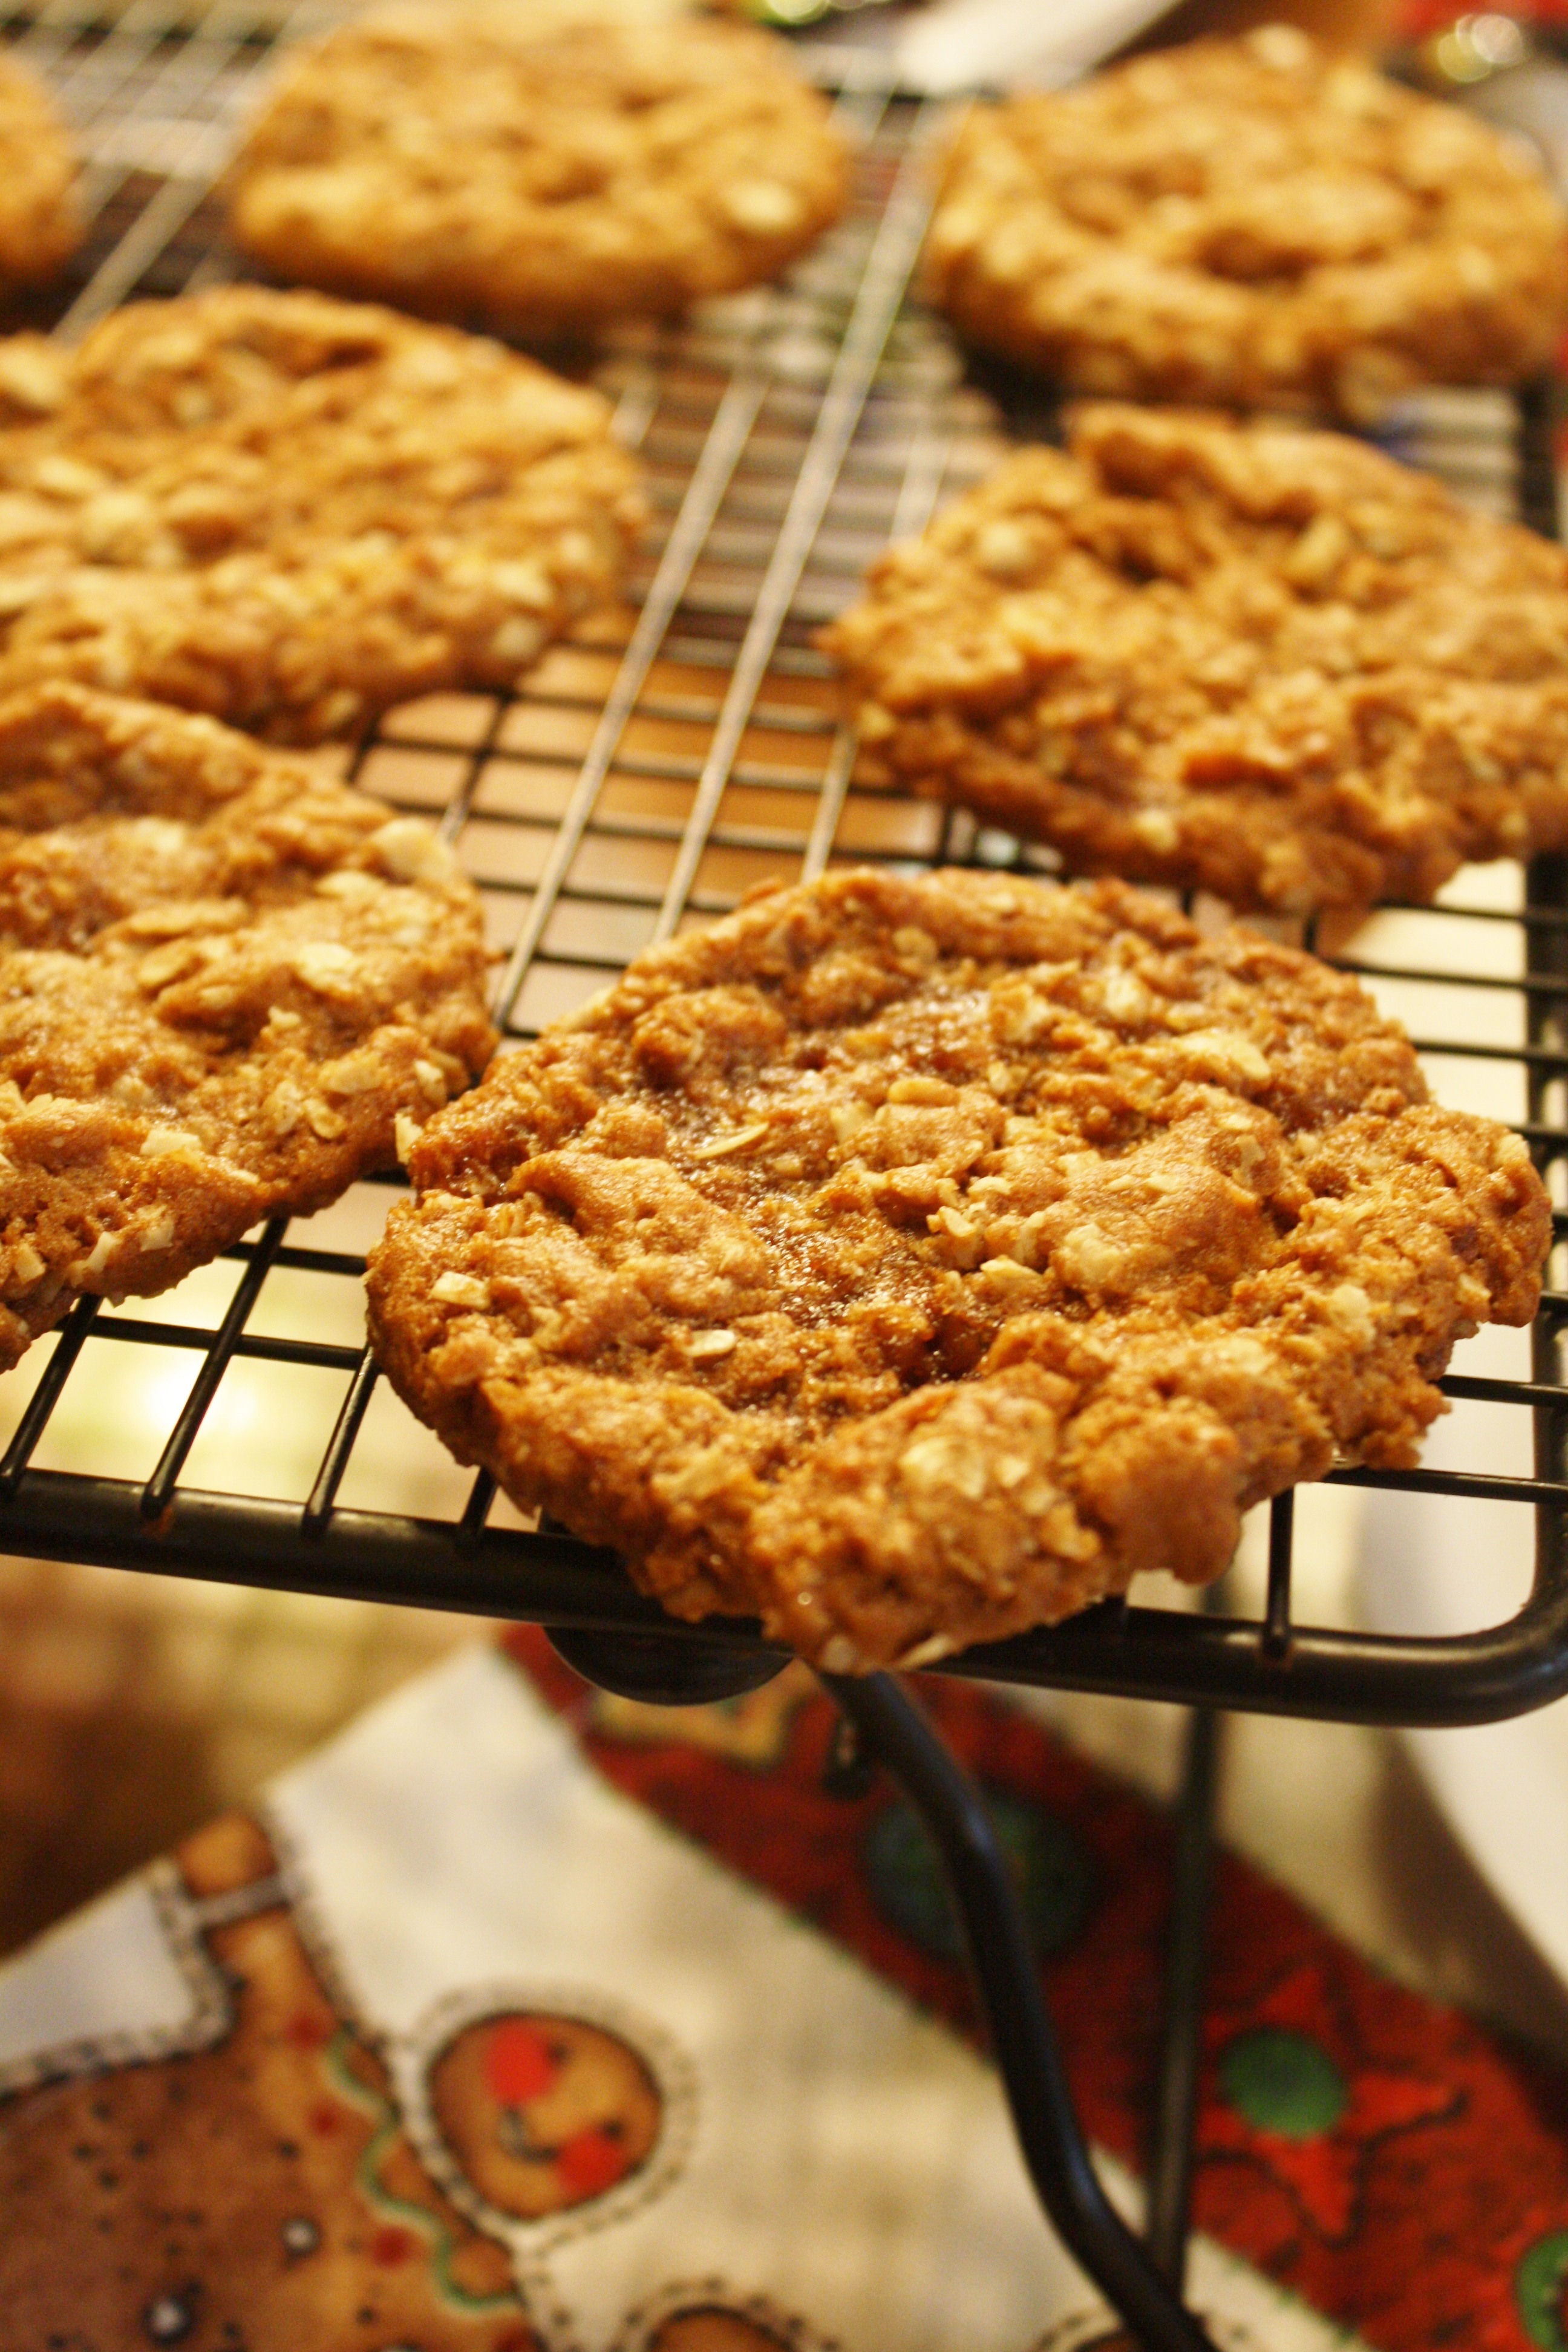 Christmas Cookies From Around The World With Pictures.Anzac Biscuits Christmas Cookies From Around The World